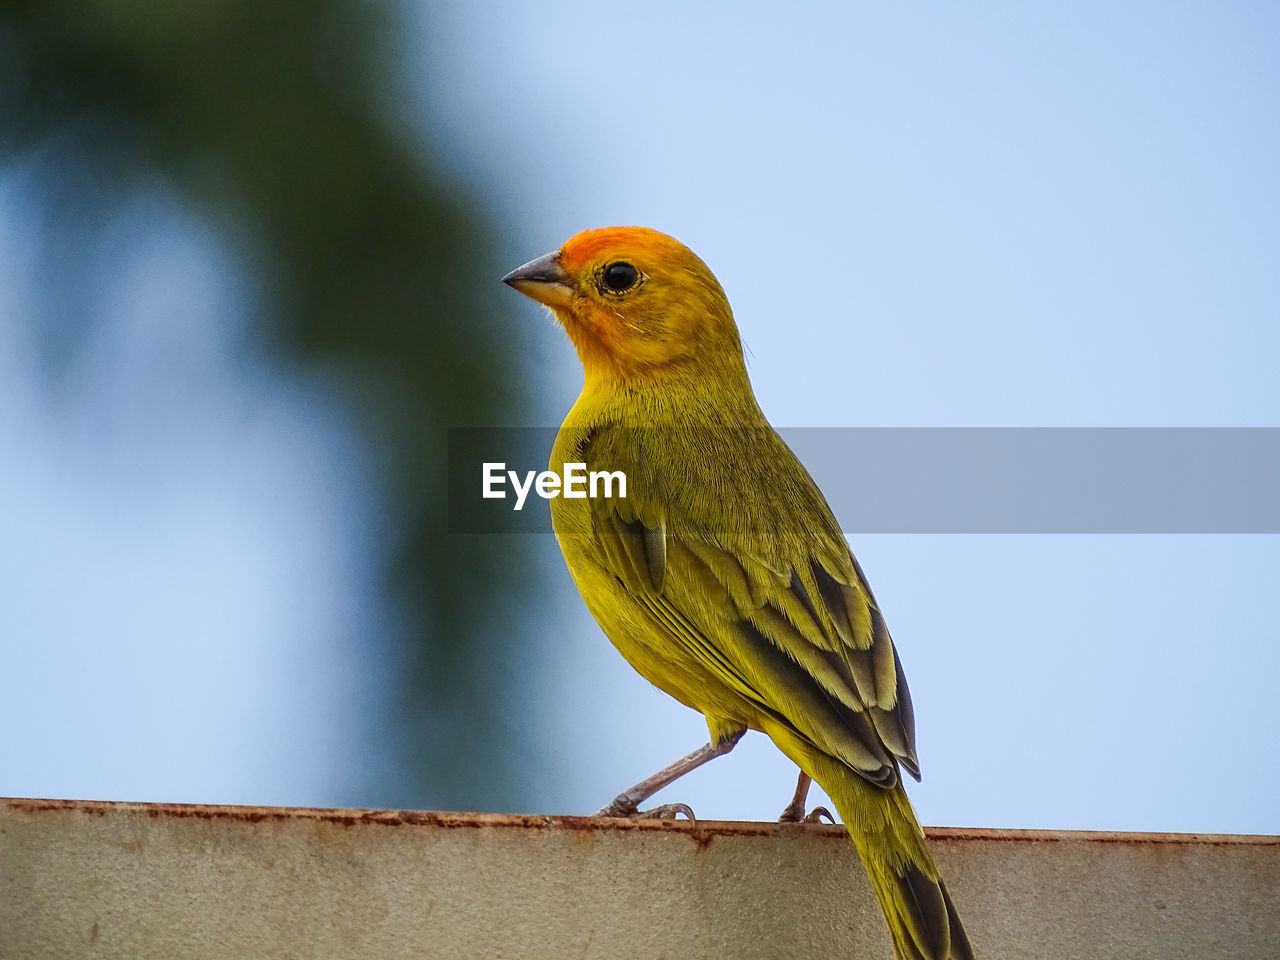 bird, animal themes, vertebrate, animal, one animal, animals in the wild, animal wildlife, perching, day, no people, looking, nature, focus on foreground, looking away, outdoors, close-up, yellow, low angle view, robin, beauty in nature